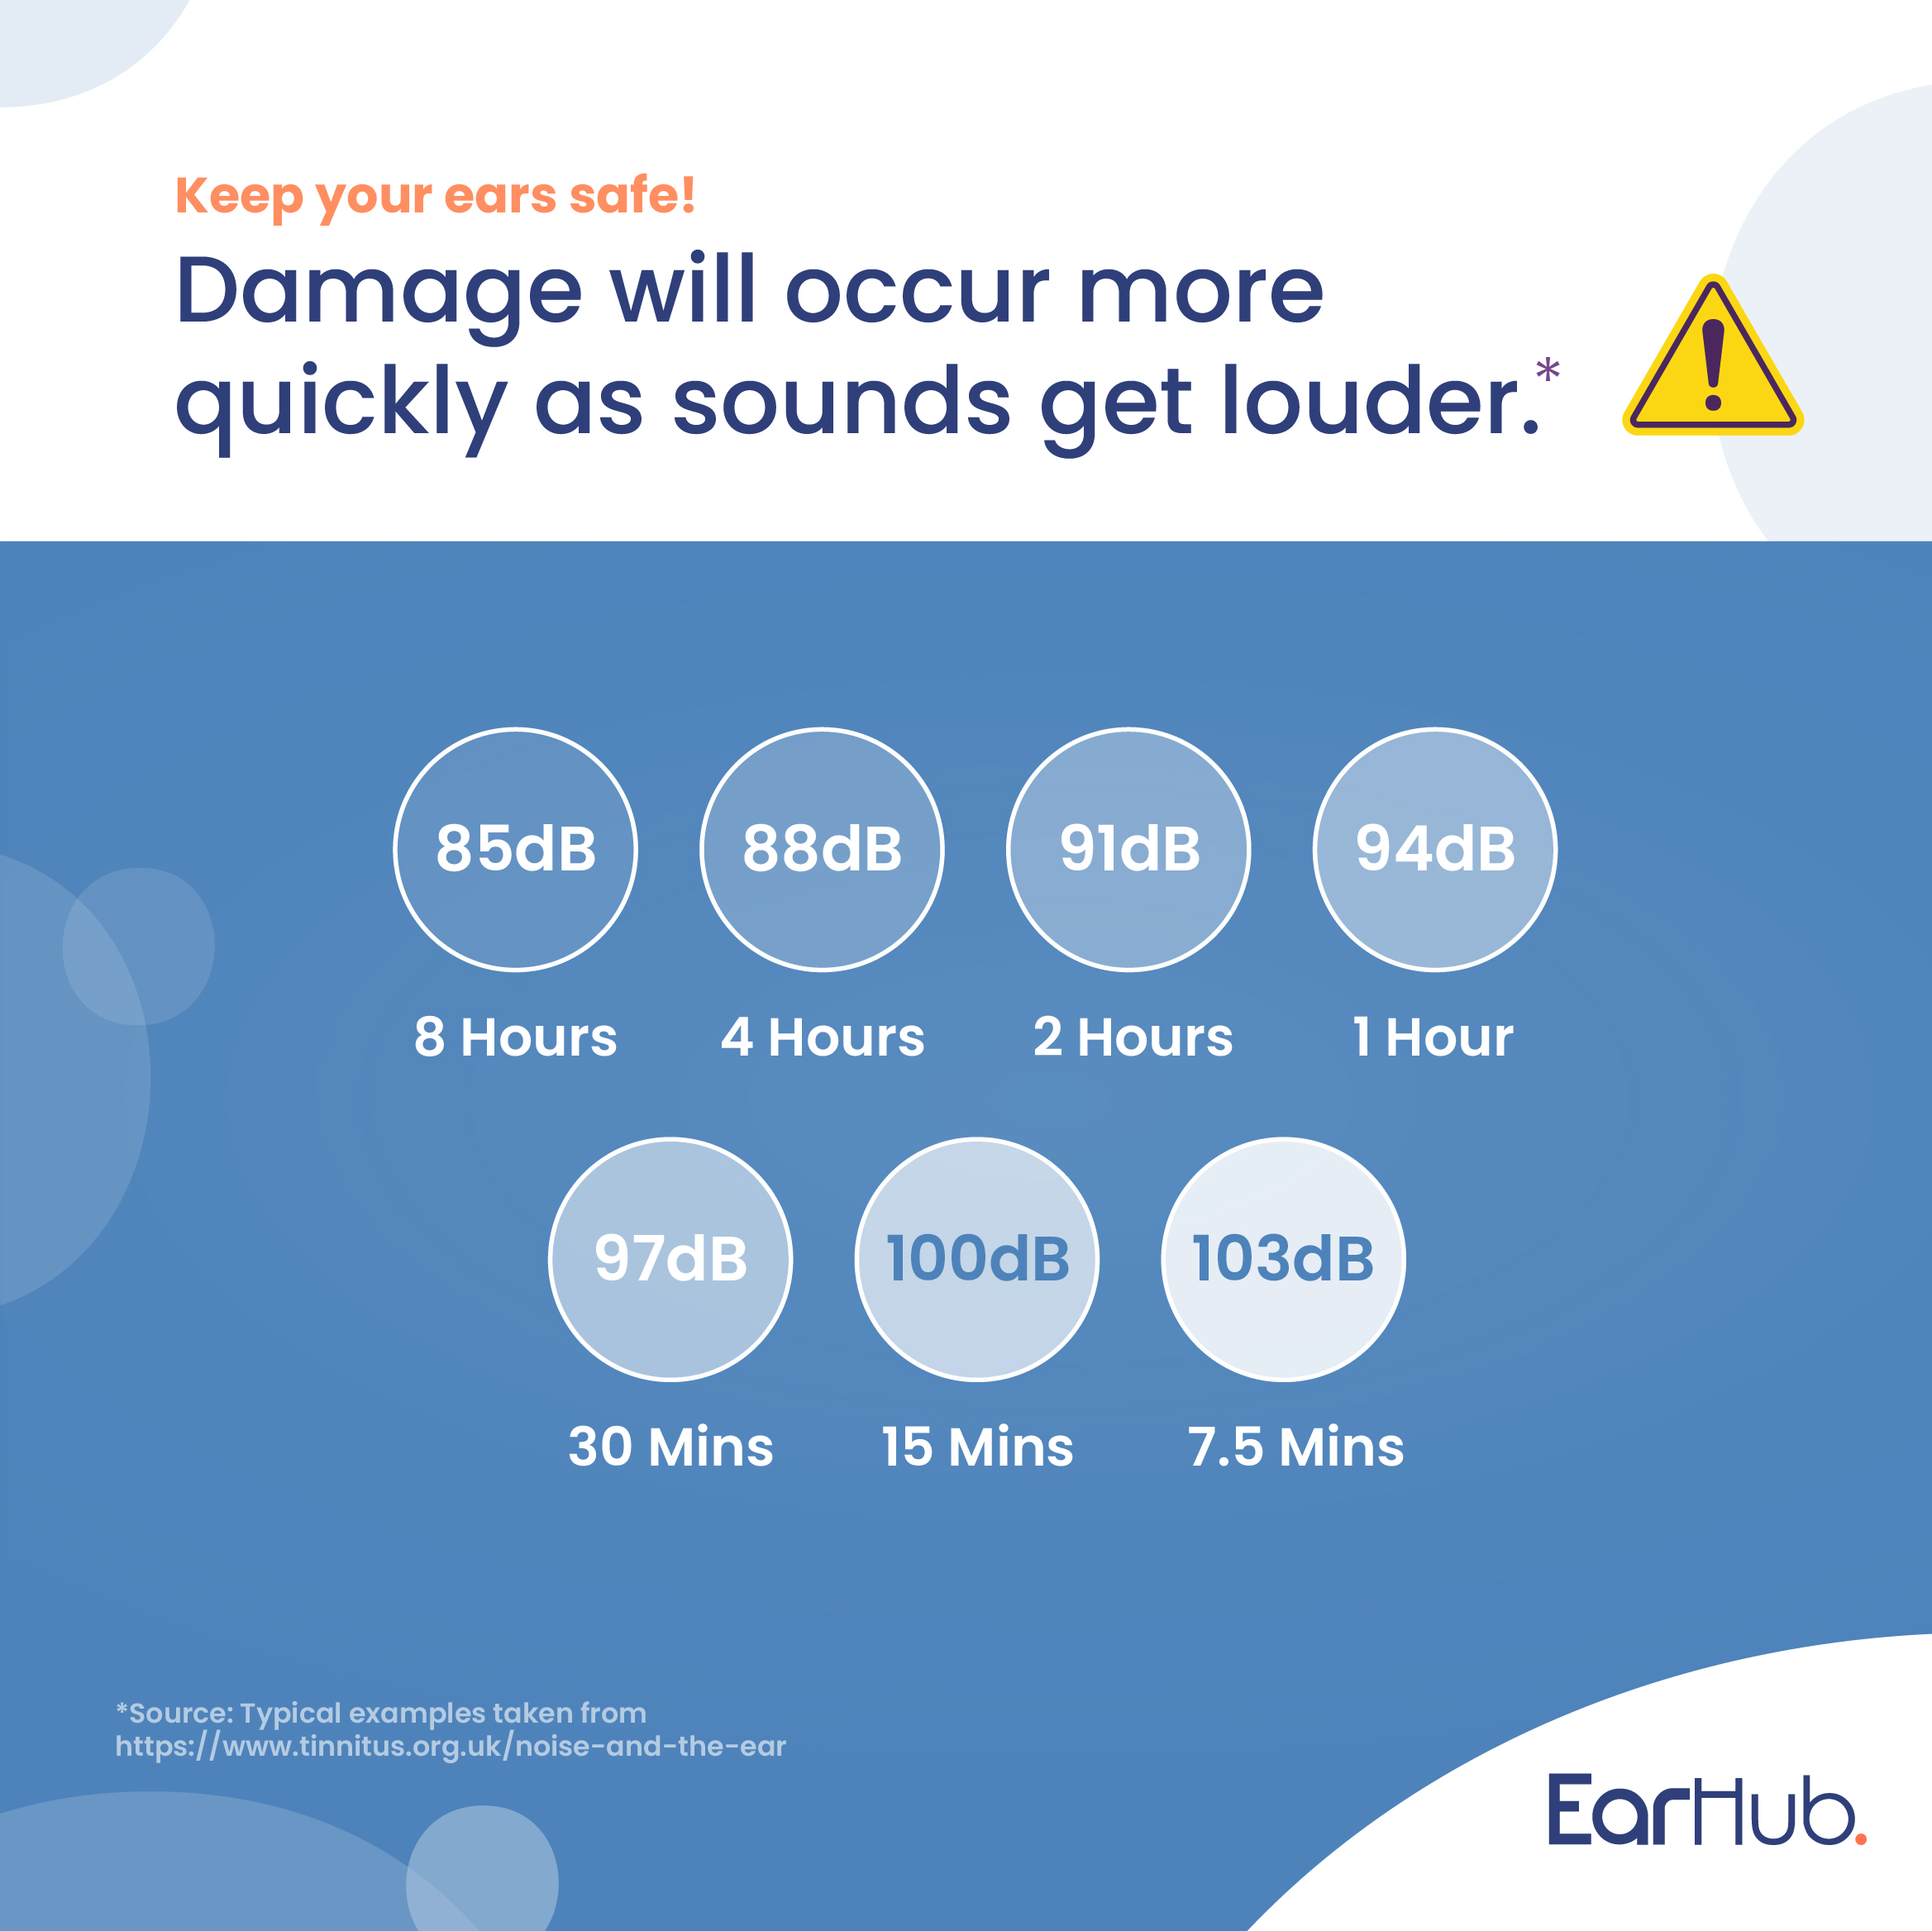 Damage can occur more quickly as sounds get louder. Sounds above 85dB are harmful to your ears.